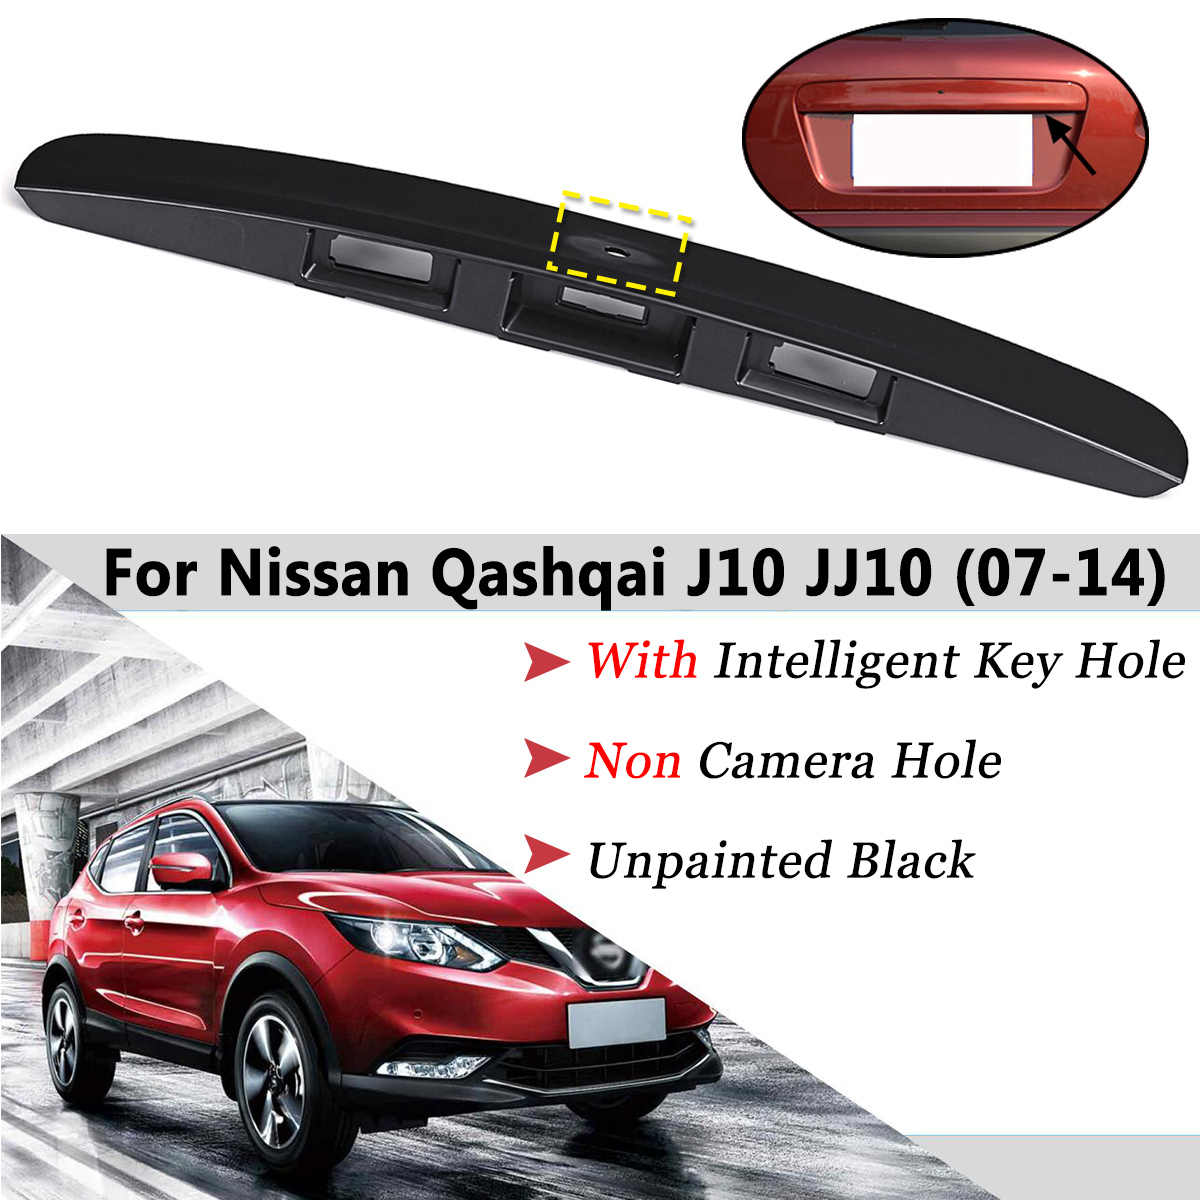 Unpainted Black Rear Tailgate Boot Lid Trunk Handle With I-key Without Camera Hole For Nissan Qashqai J10 2007-2014